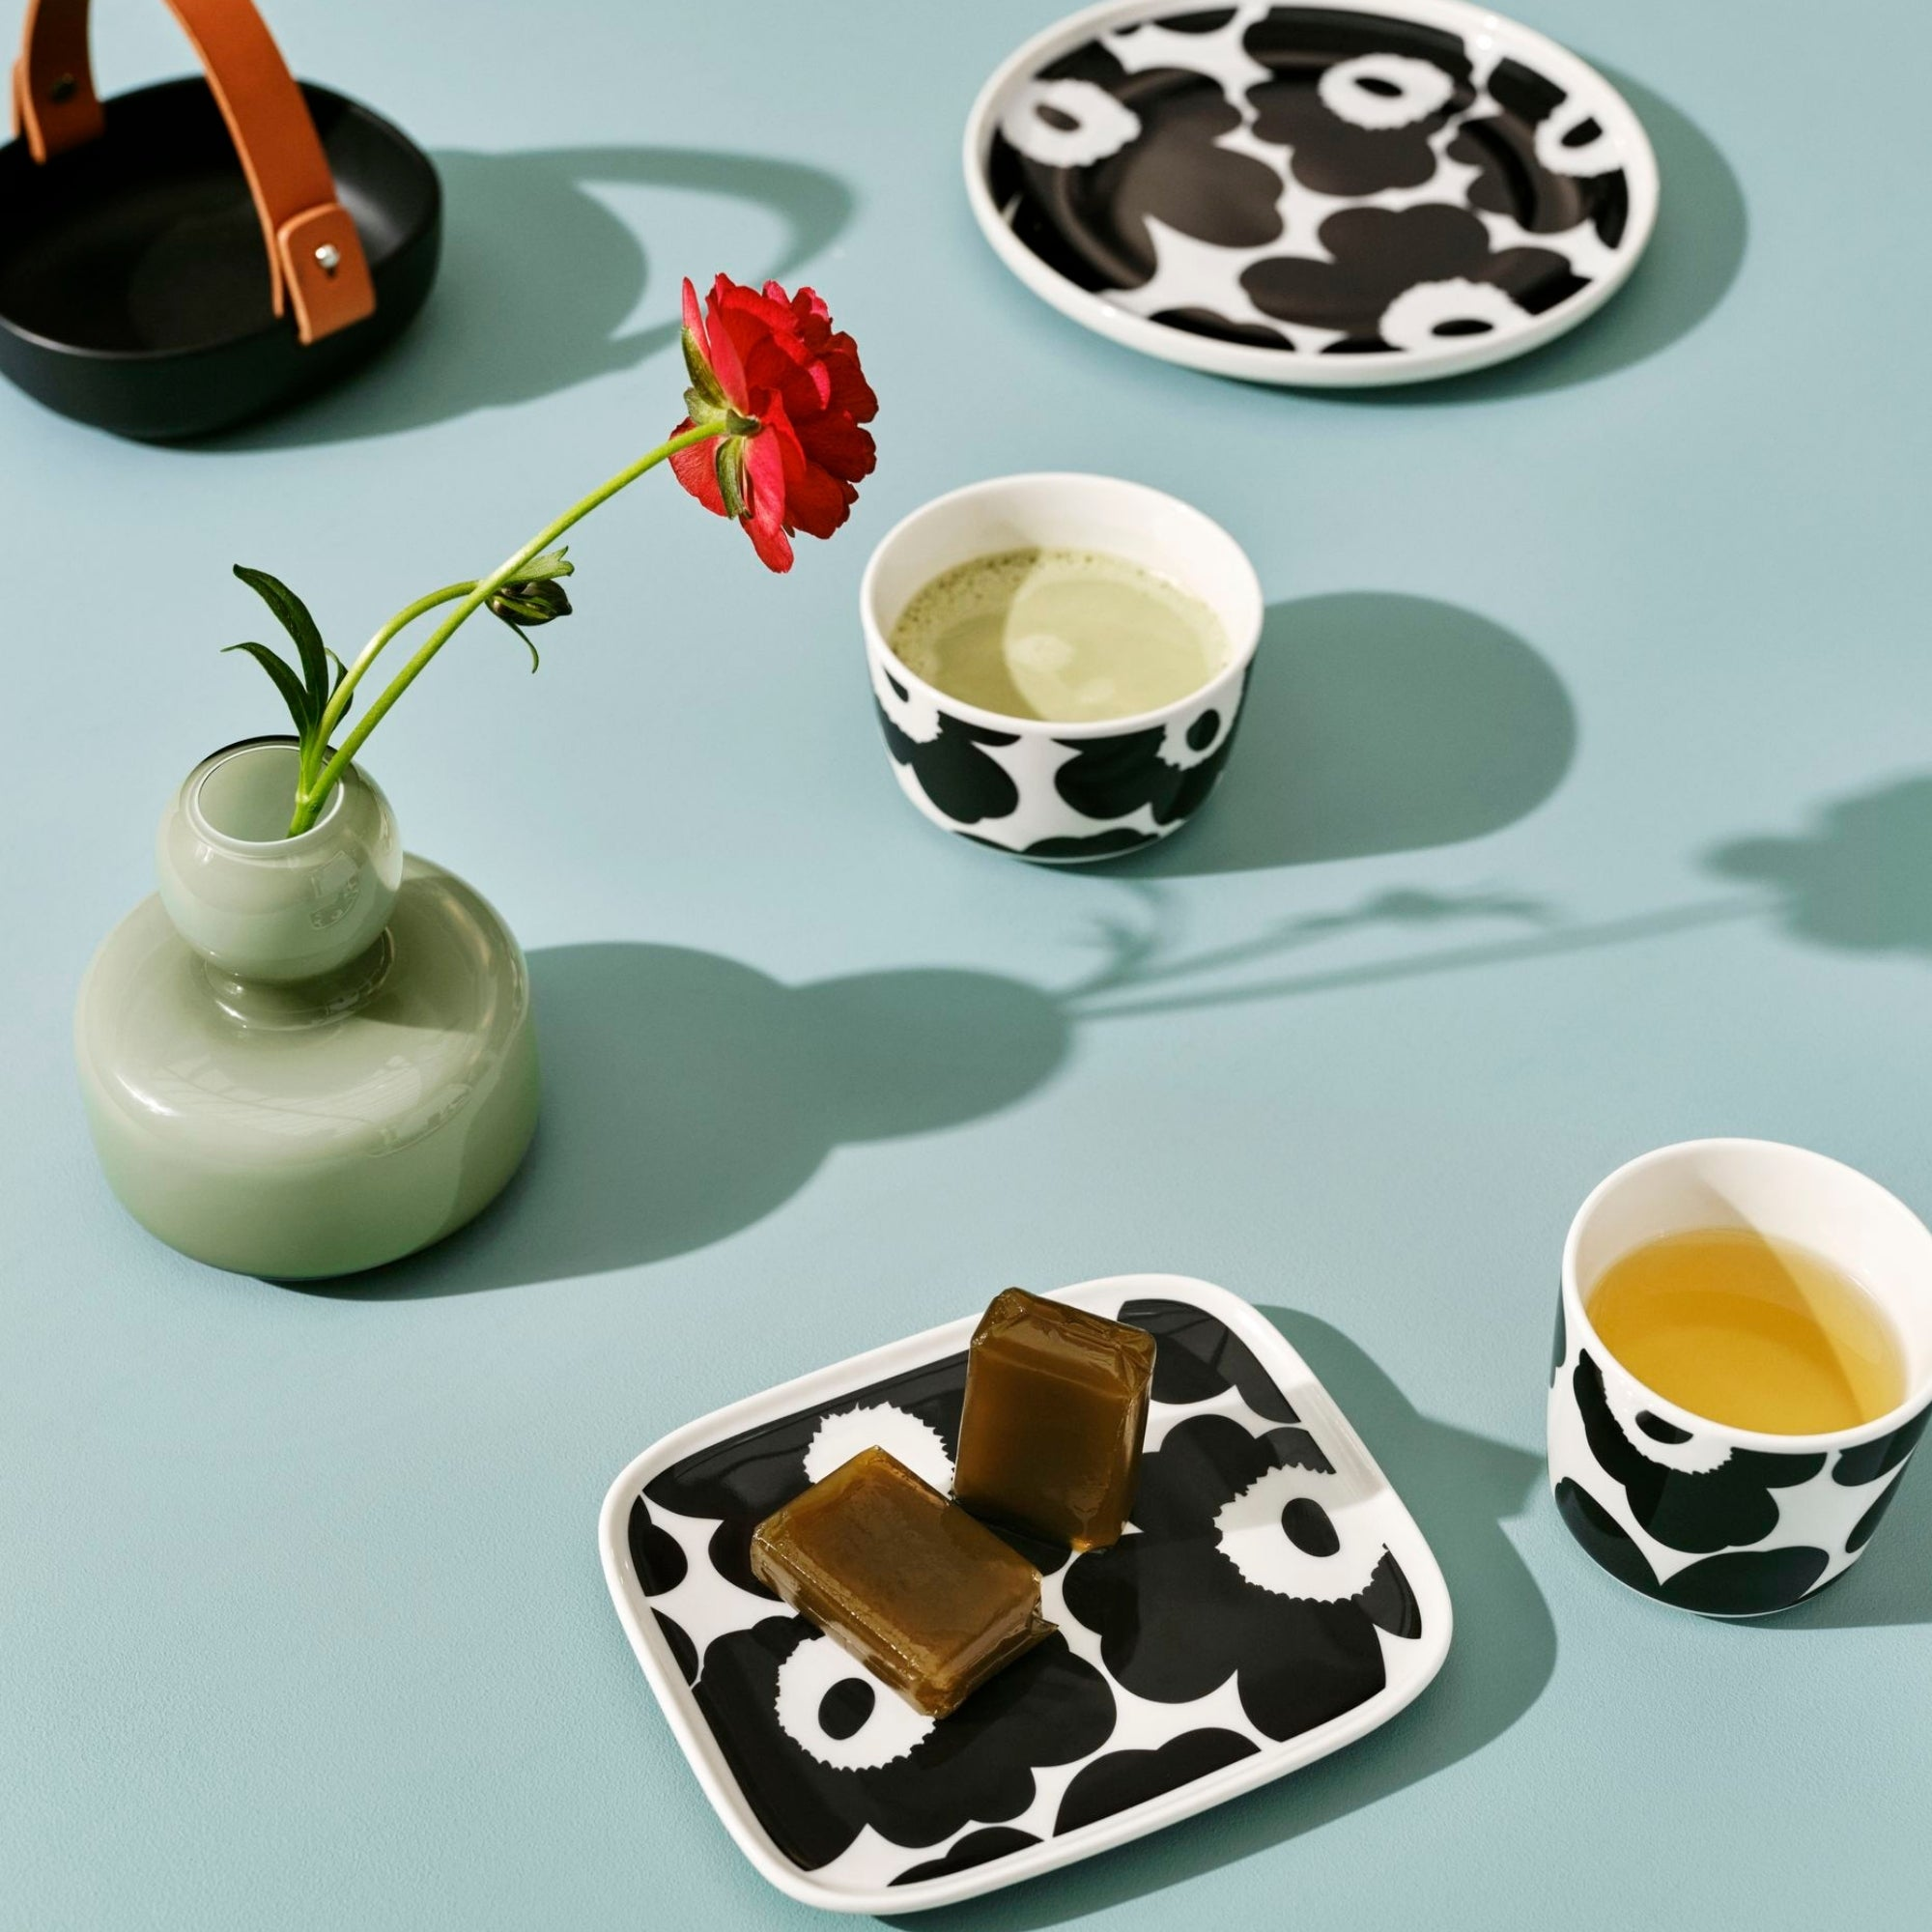 Marimekko 70 Black and White Home Collection Inspiration